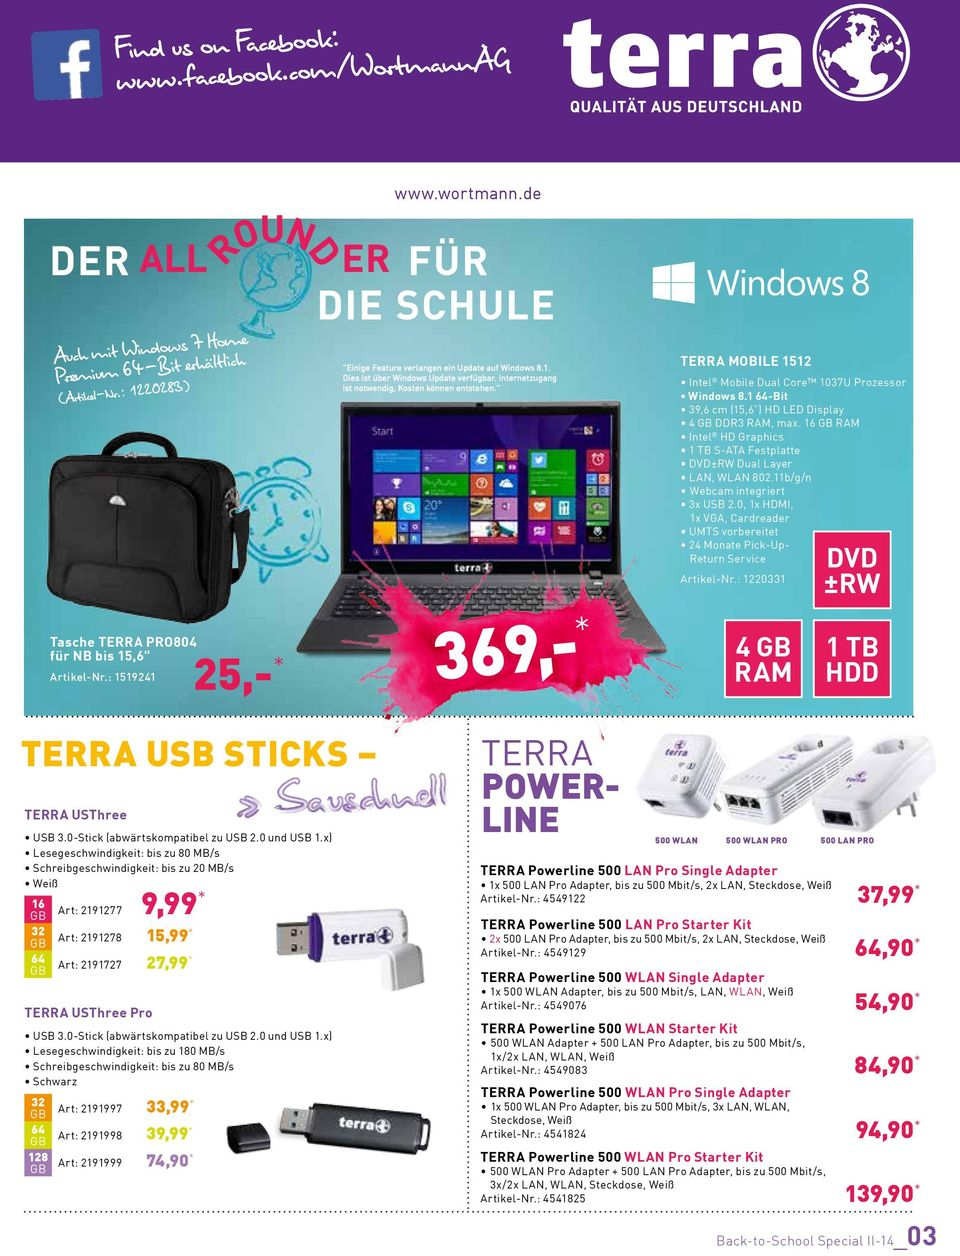 """ 369,- * TERRA MOBILE 1512 Intel Mobile Dual Core 1037U Prozessor 39,6 cm (15,6"") HD LED Display DDR3, max. 16 GB Intel HD Graphics 1 TB S-ATA Festplatte DVD±RW Dual Layer LAN, WLAN 802."